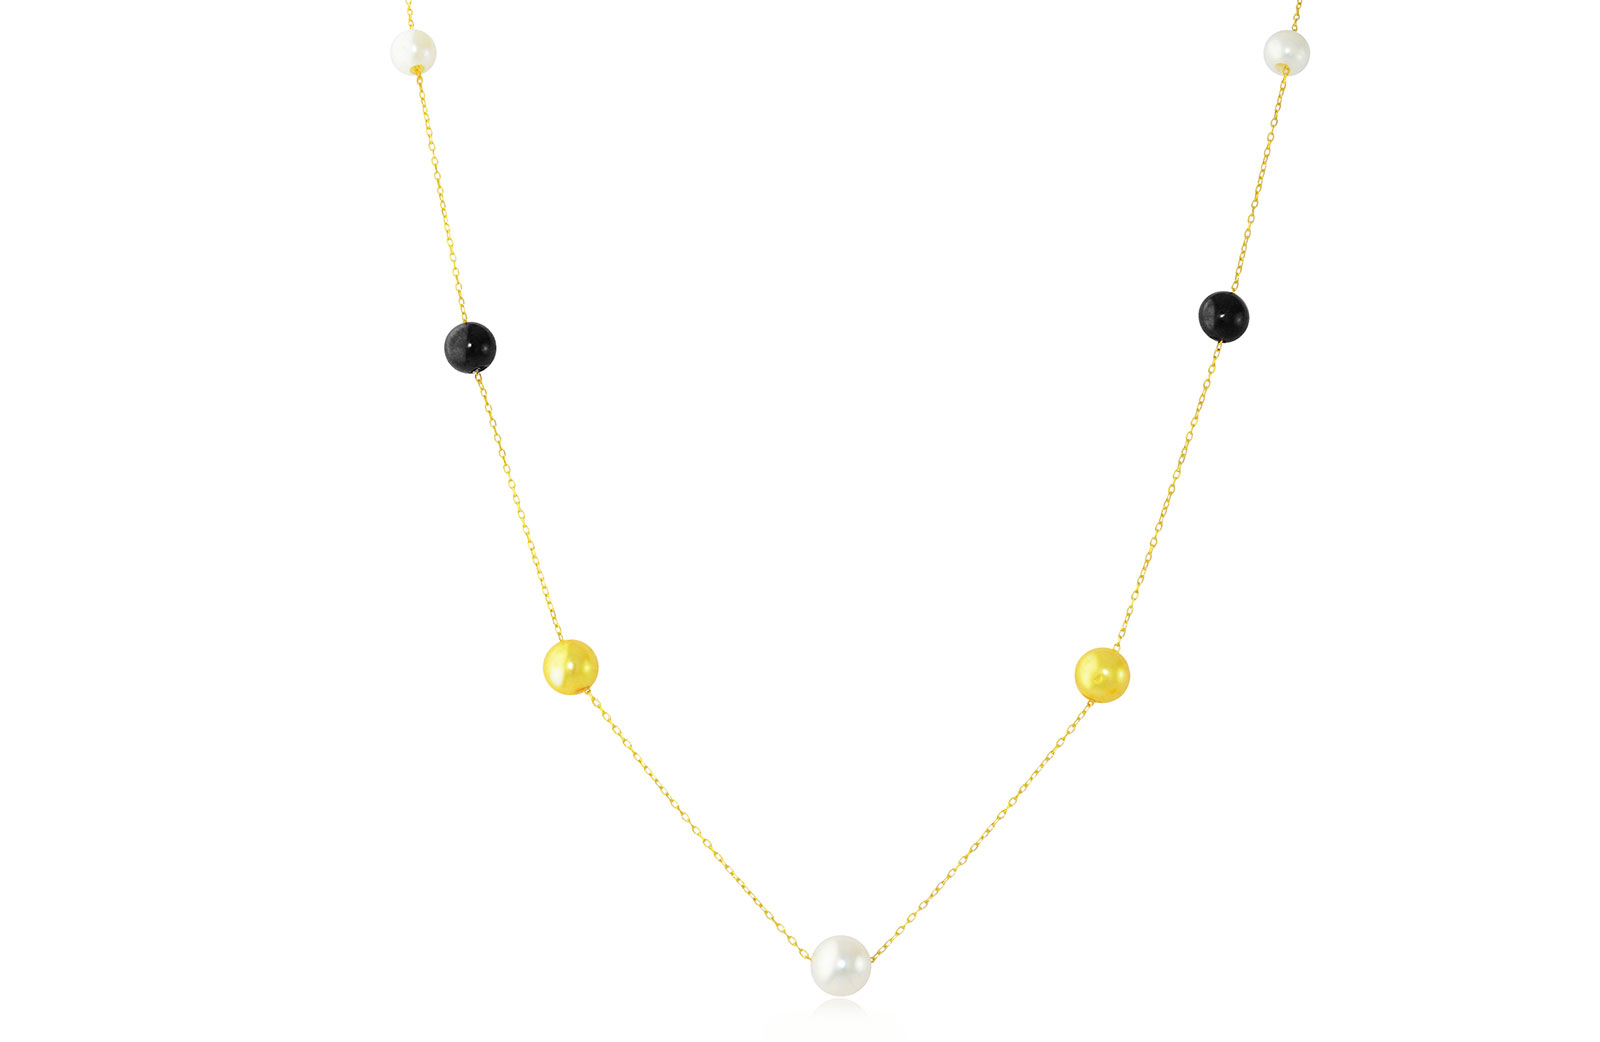 Vp Jewels 18K Solid Gold 5-7MMGradual  Built-in Golden-Yelow, White and Black  Pearl Necklace